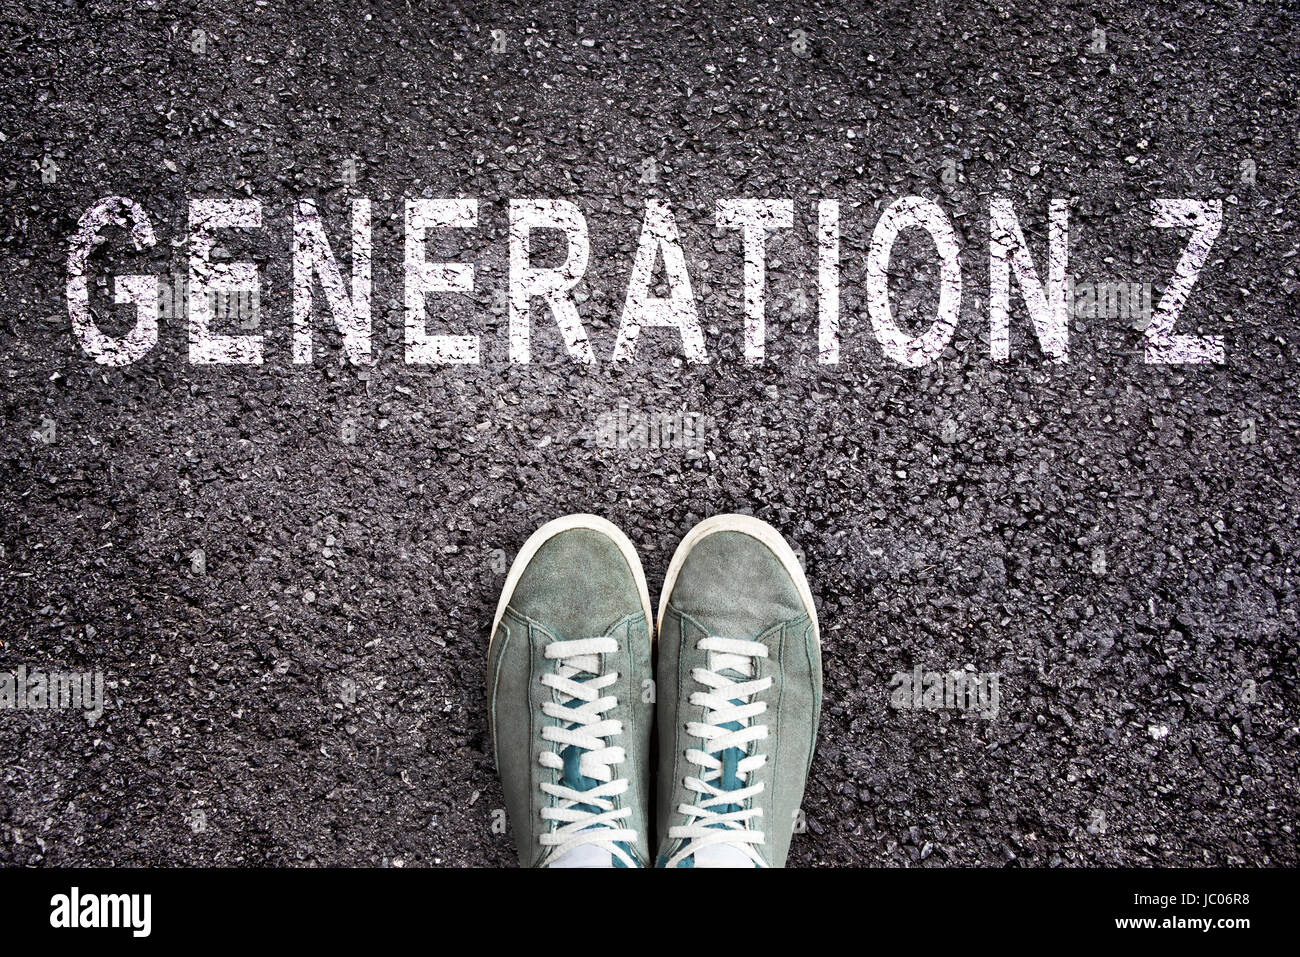 Text Generation Z written on asphalt with shoes, generation Z concept - Stock Image